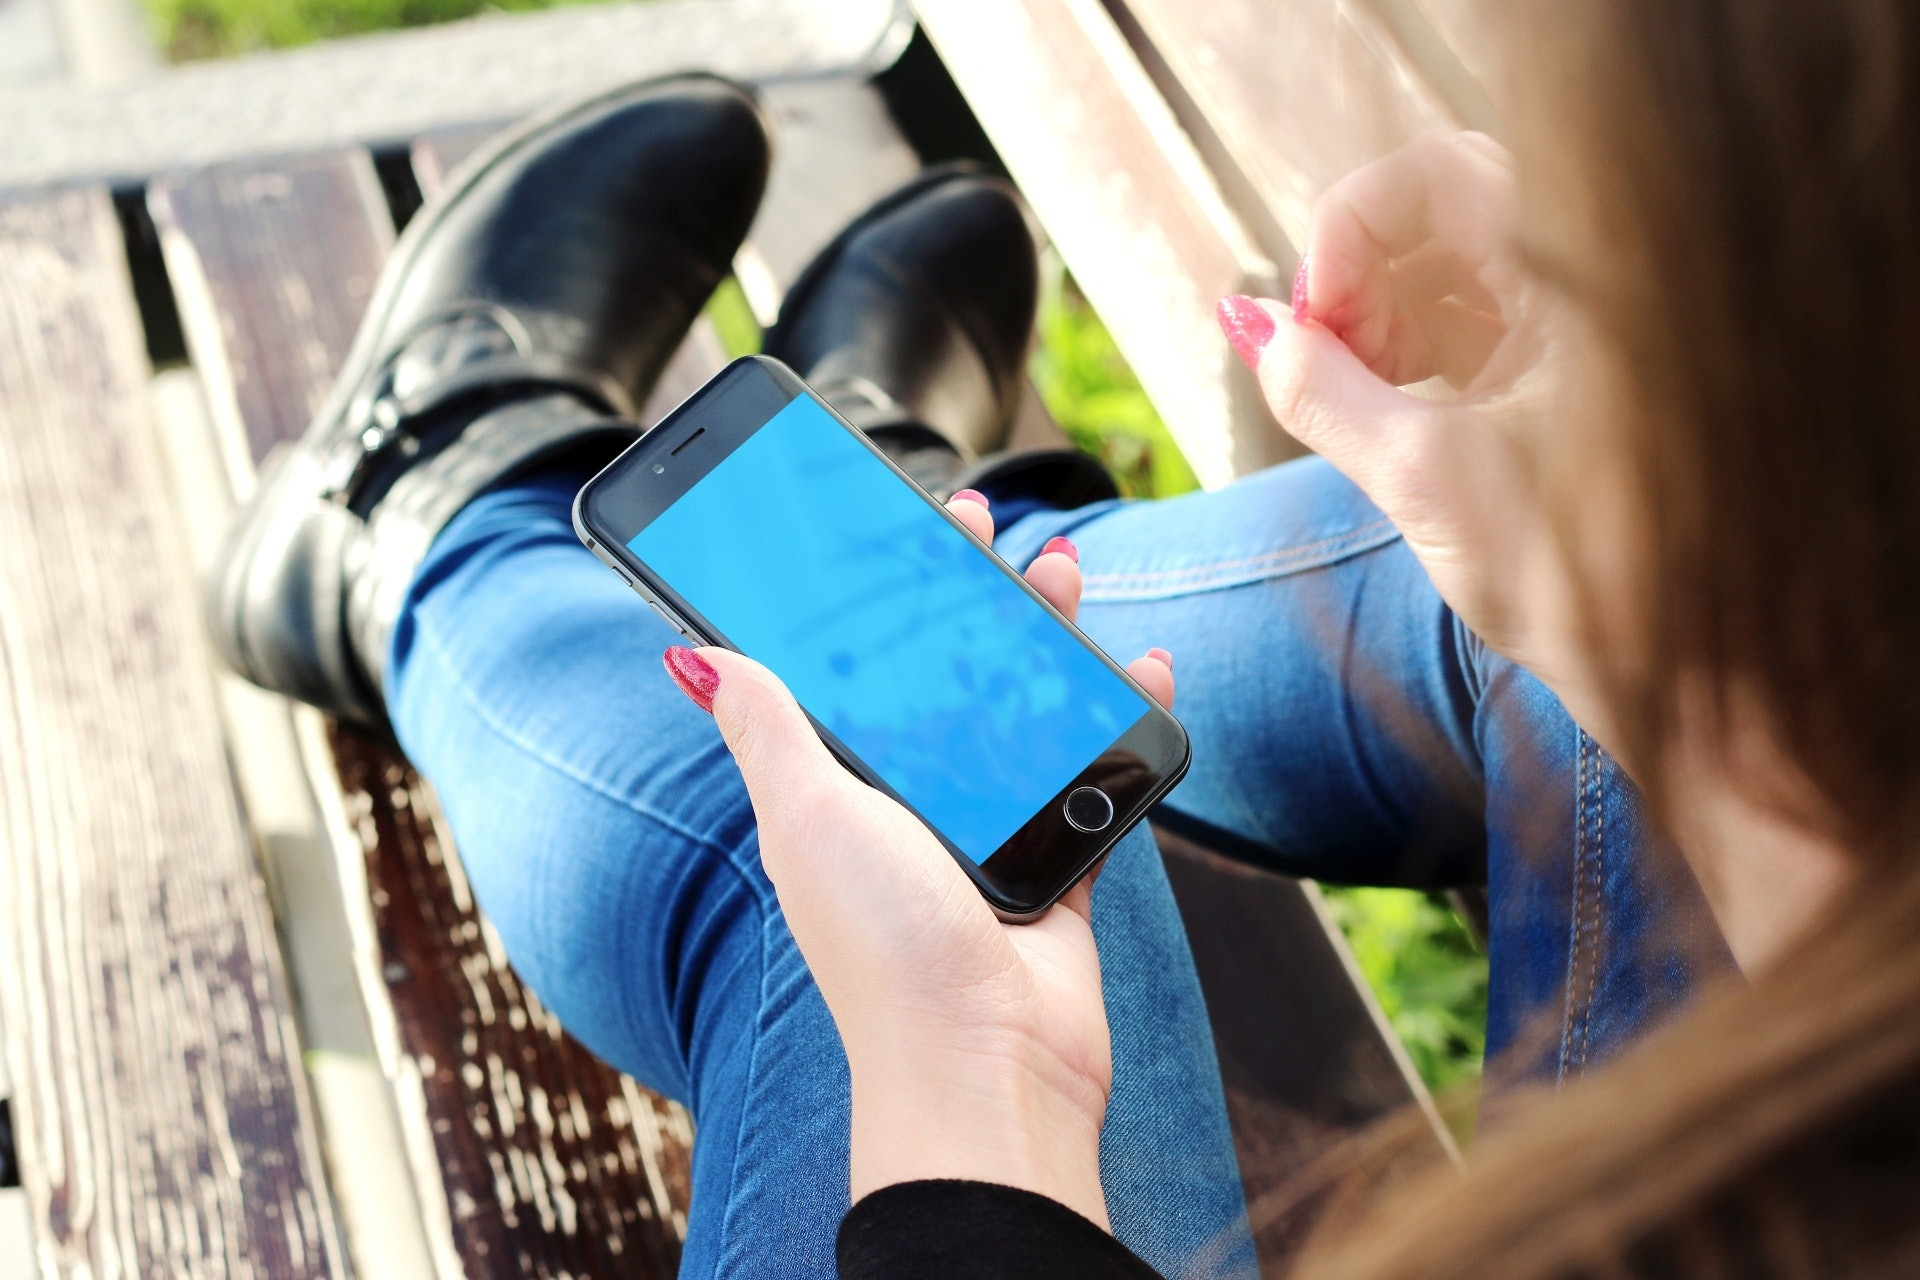 top 10 dating apps for teens 2016 fashion: